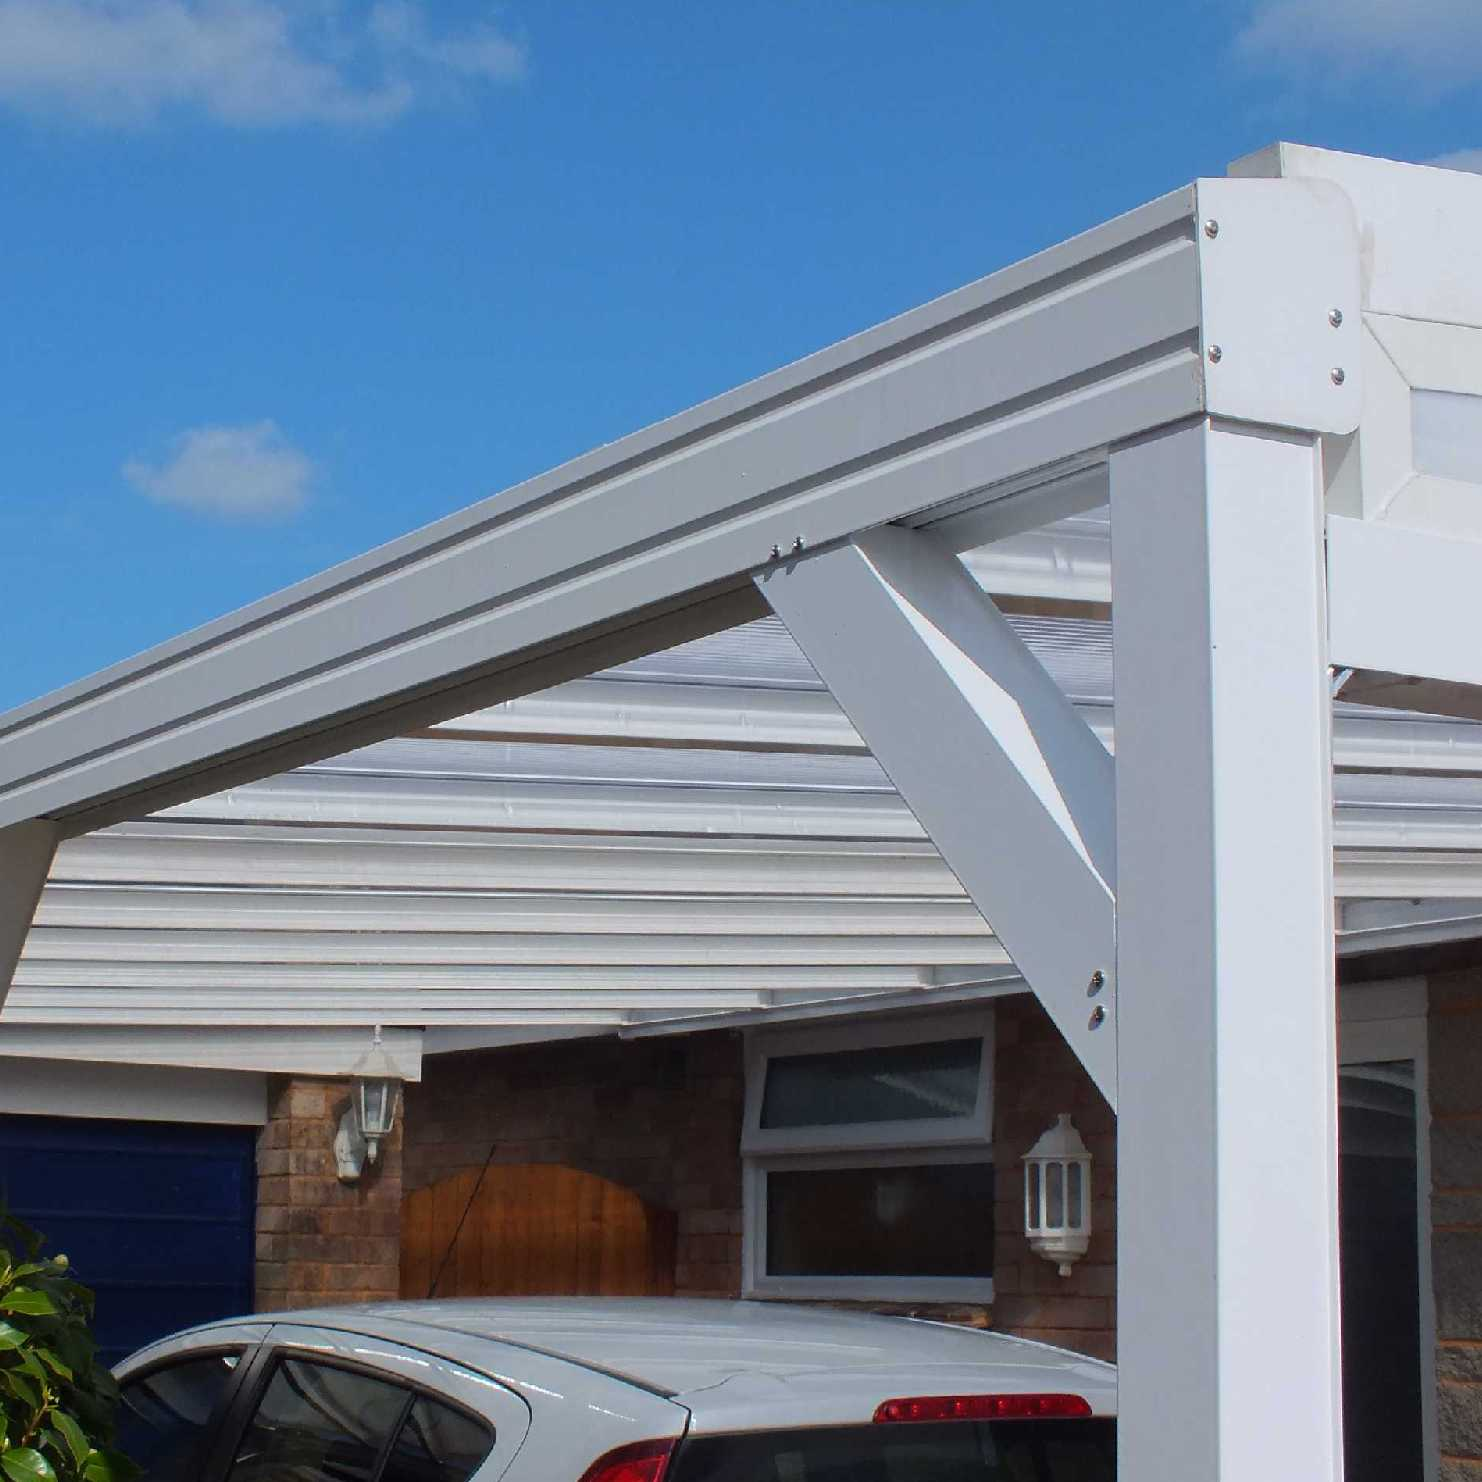 Buy Omega Smart White Lean-To Canopy with 16mm Polycarbonate Glazing - 5.2m (W) x 2.0m (P), (3) Supporting Posts online today